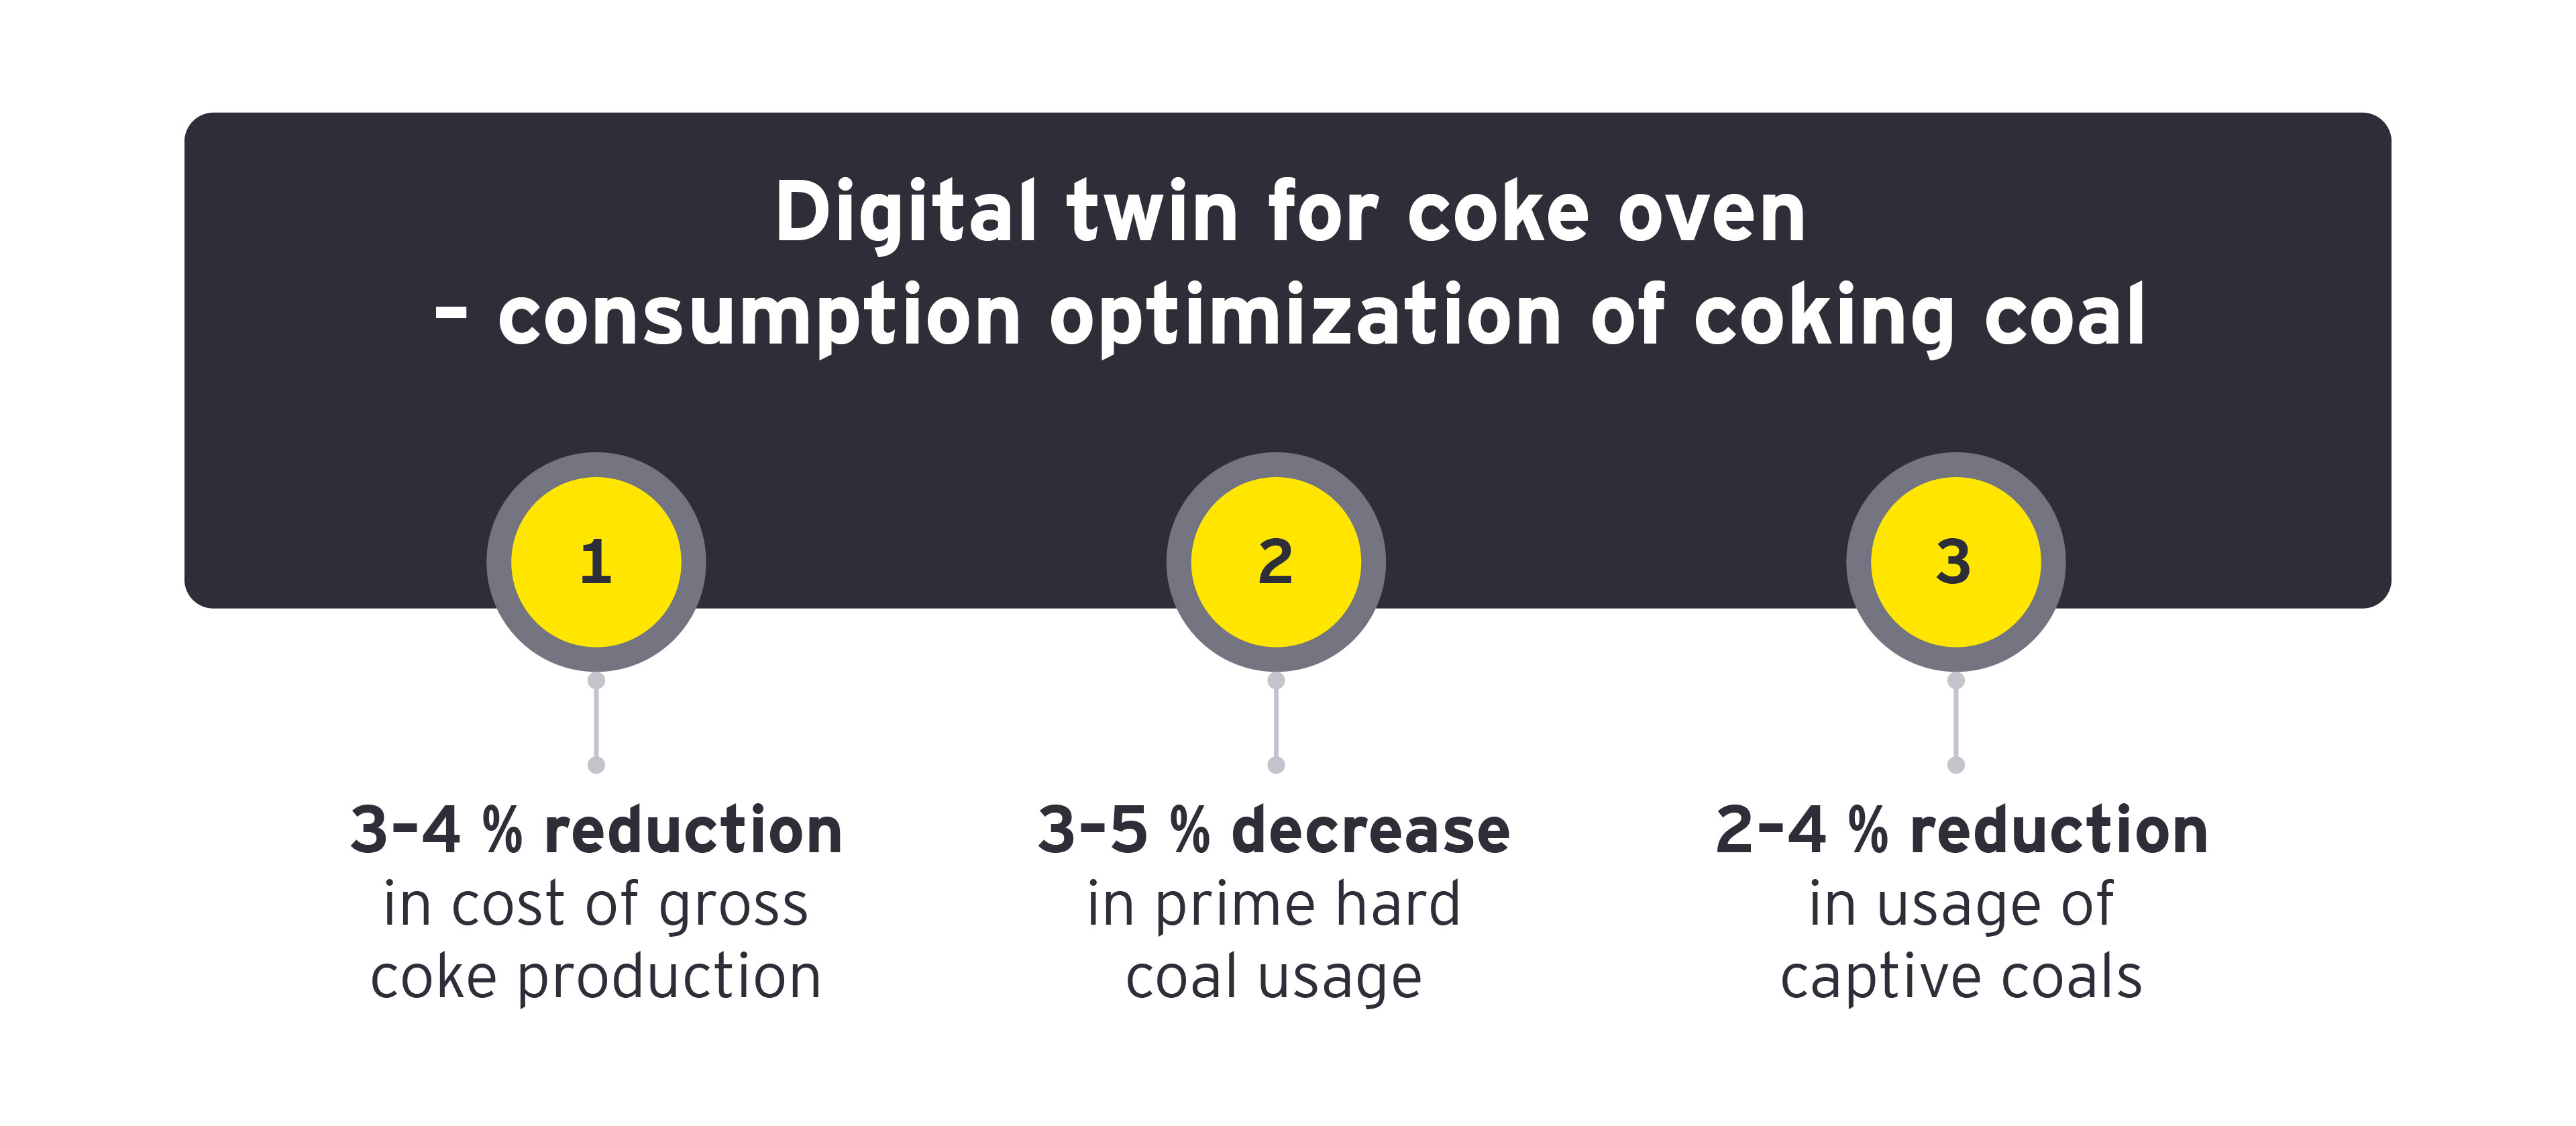 Digital twin for coke oven – consumption optimization of coking coal